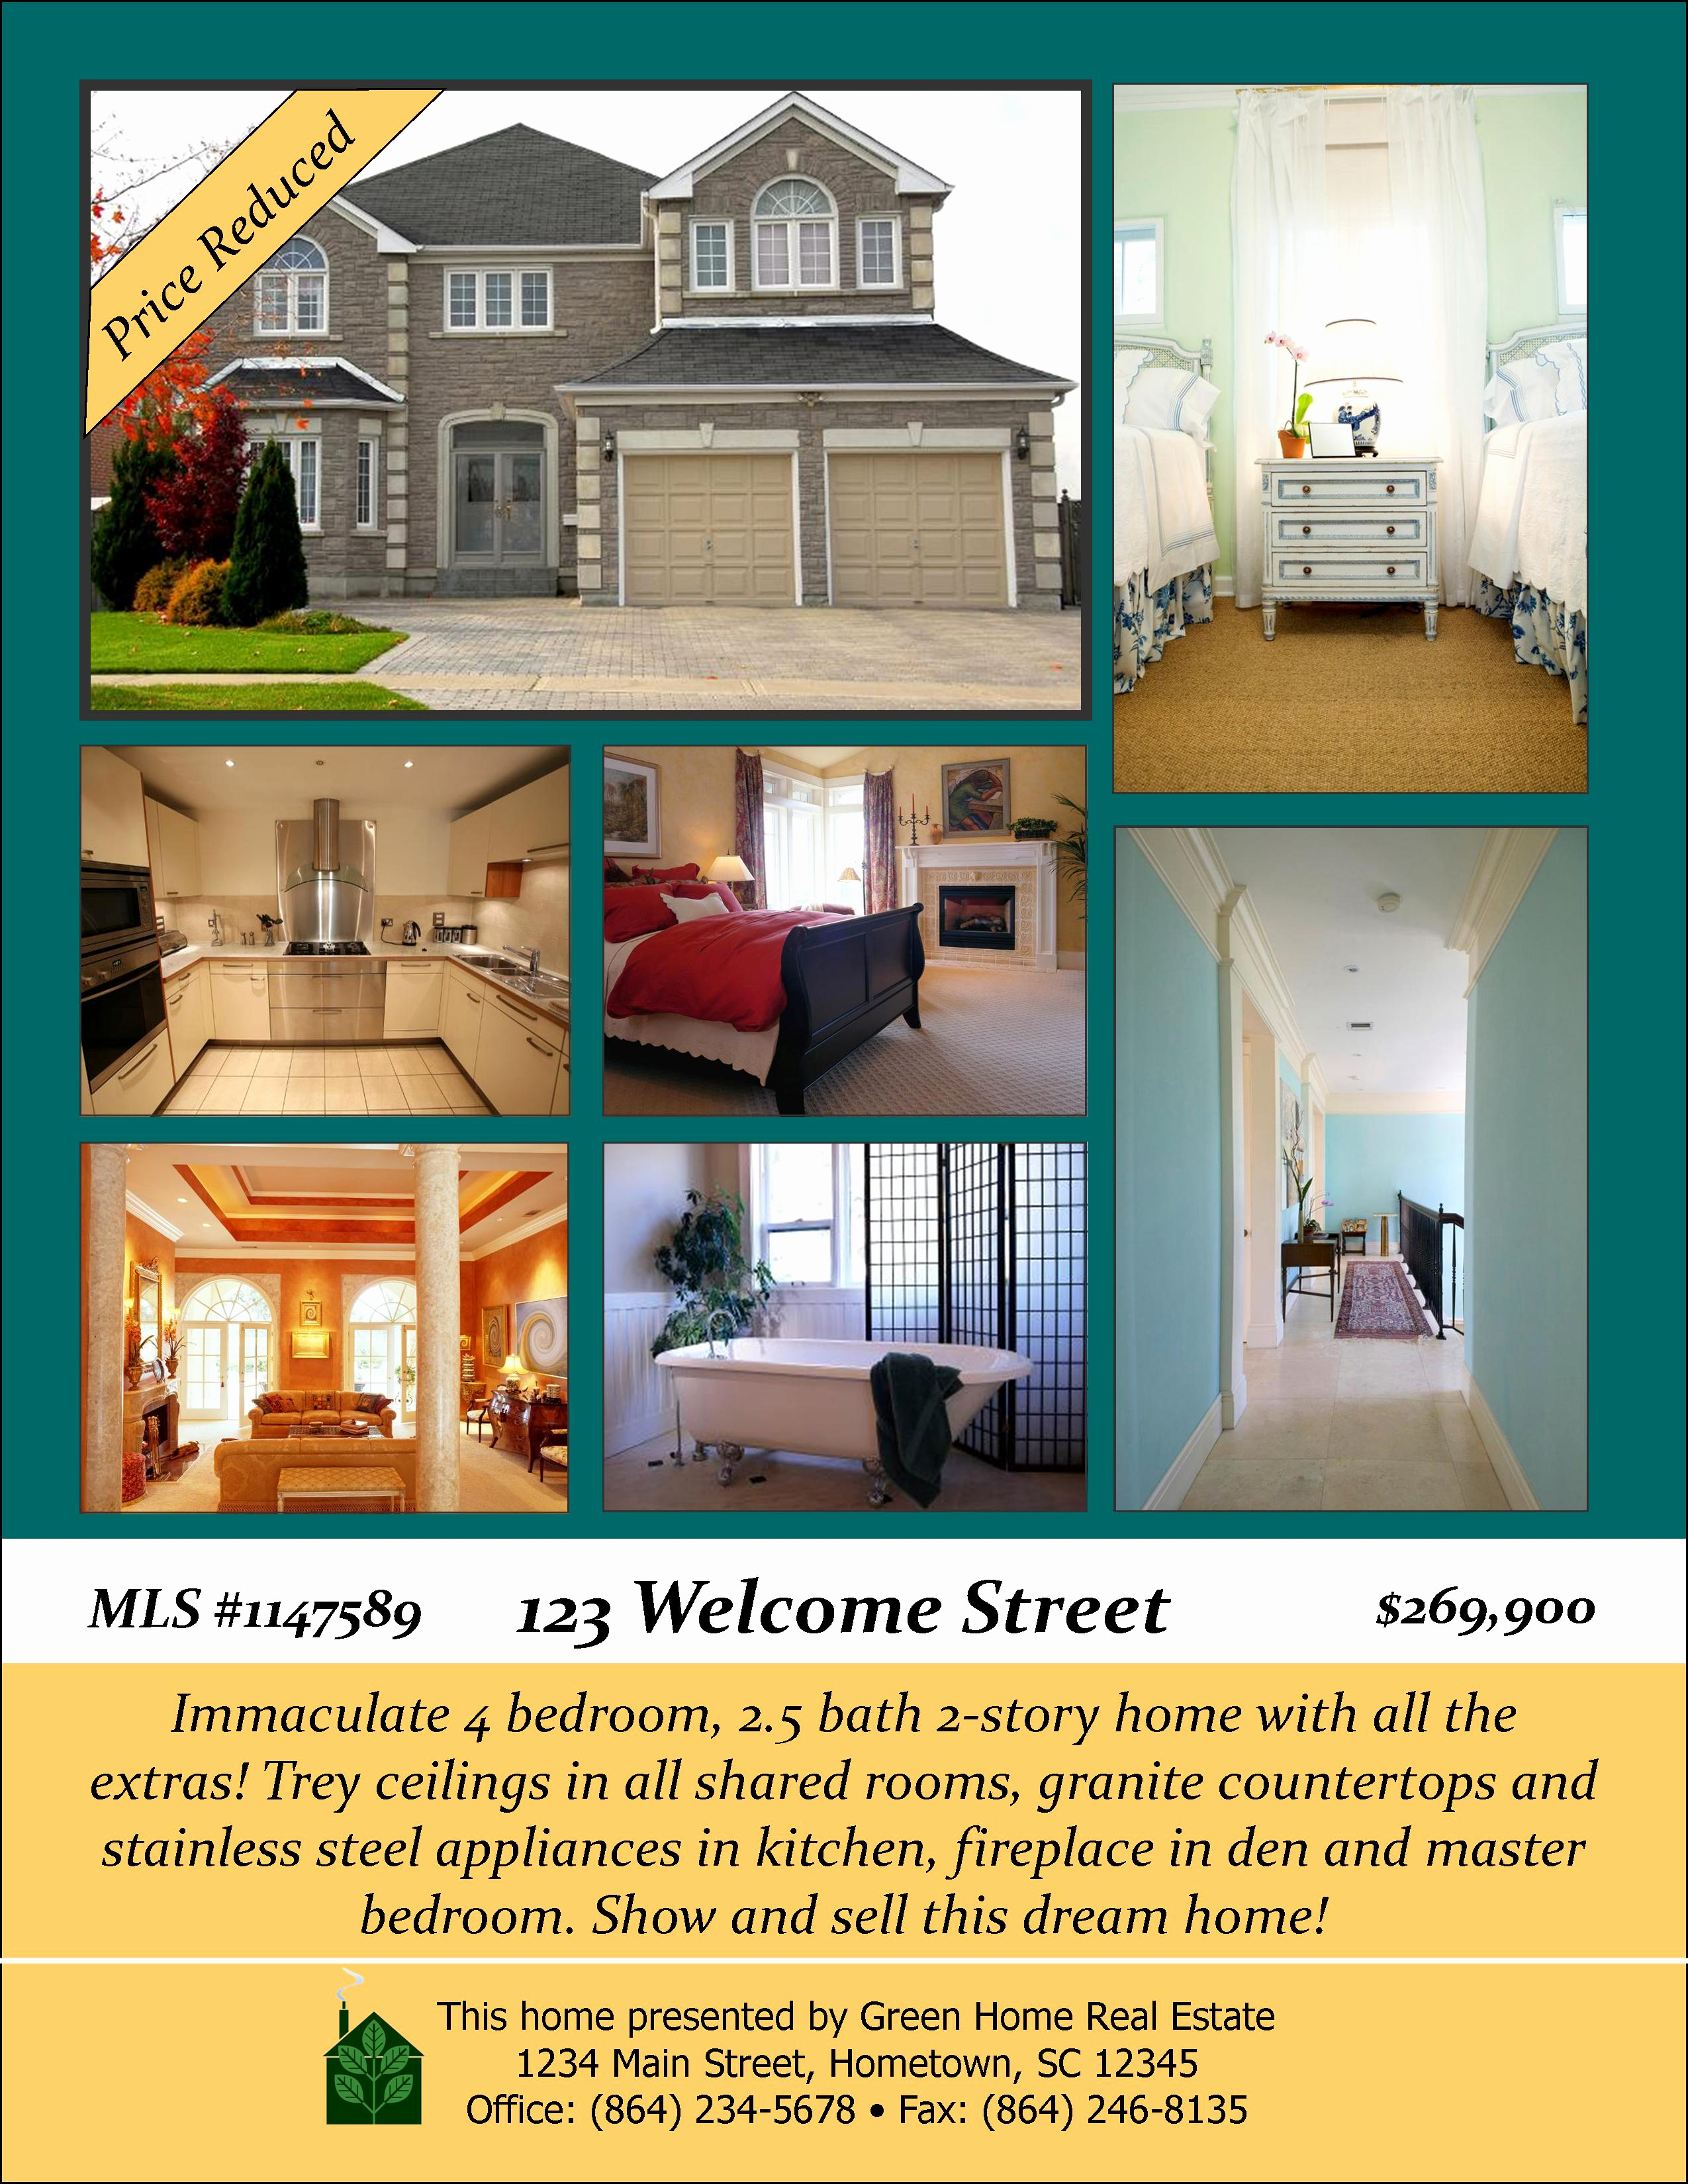 Real Estate Flyer Ideas Luxury Open House Designs